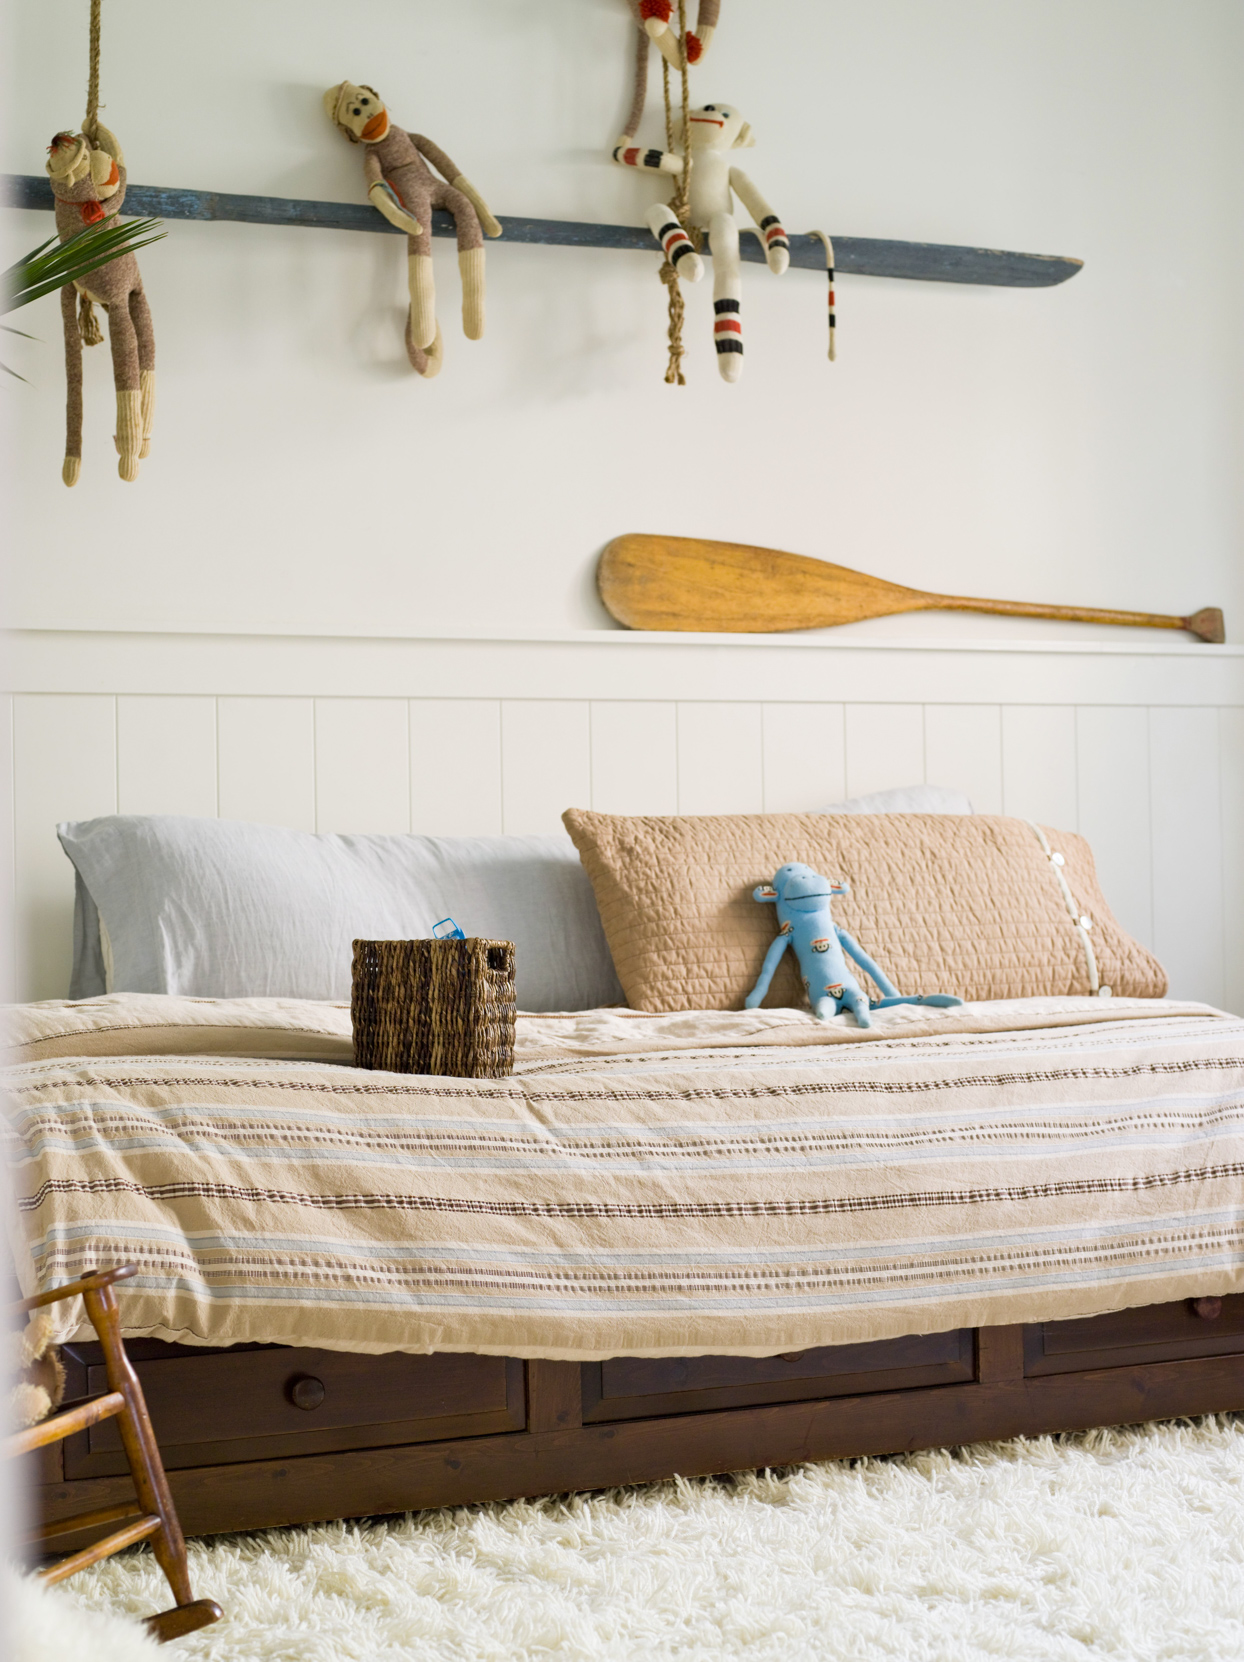 childrens bedroom with oar and stuffed animals